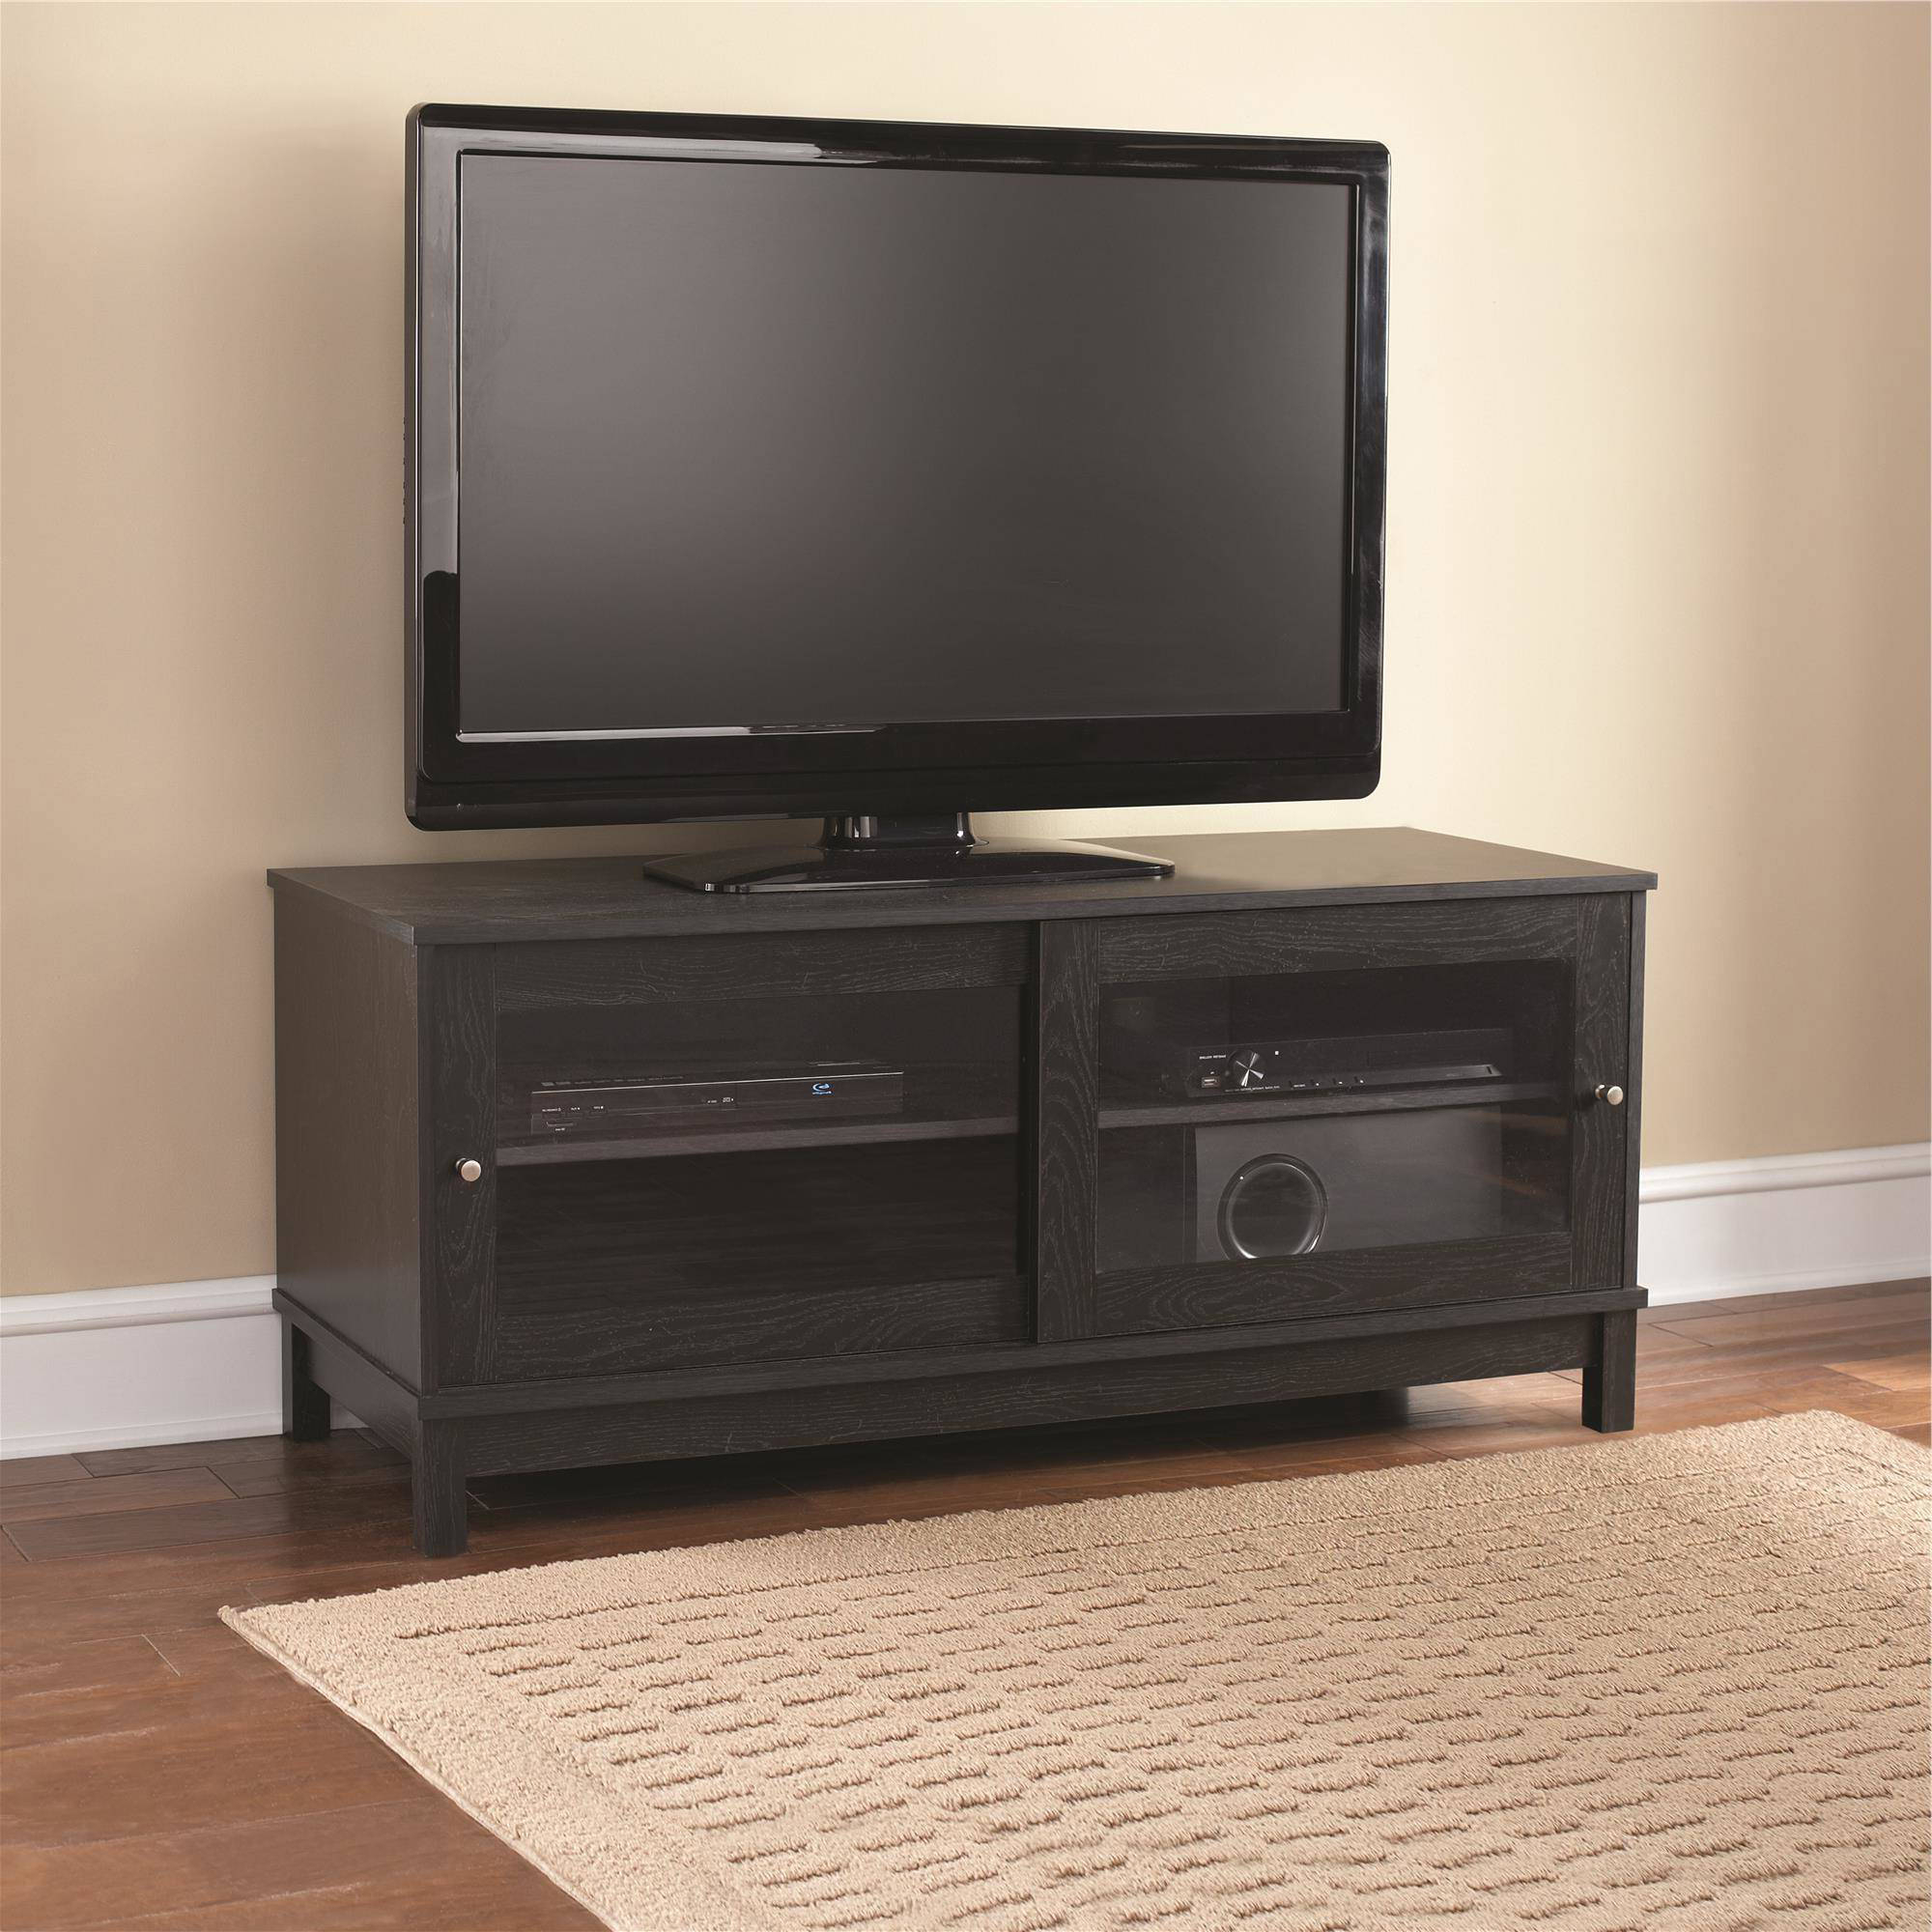 "Most Current Tv With Stands Throughout Mainstays 55"" Tv Stand With Sliding Glass Doors, Multiple Colors (View 16 of 20)"